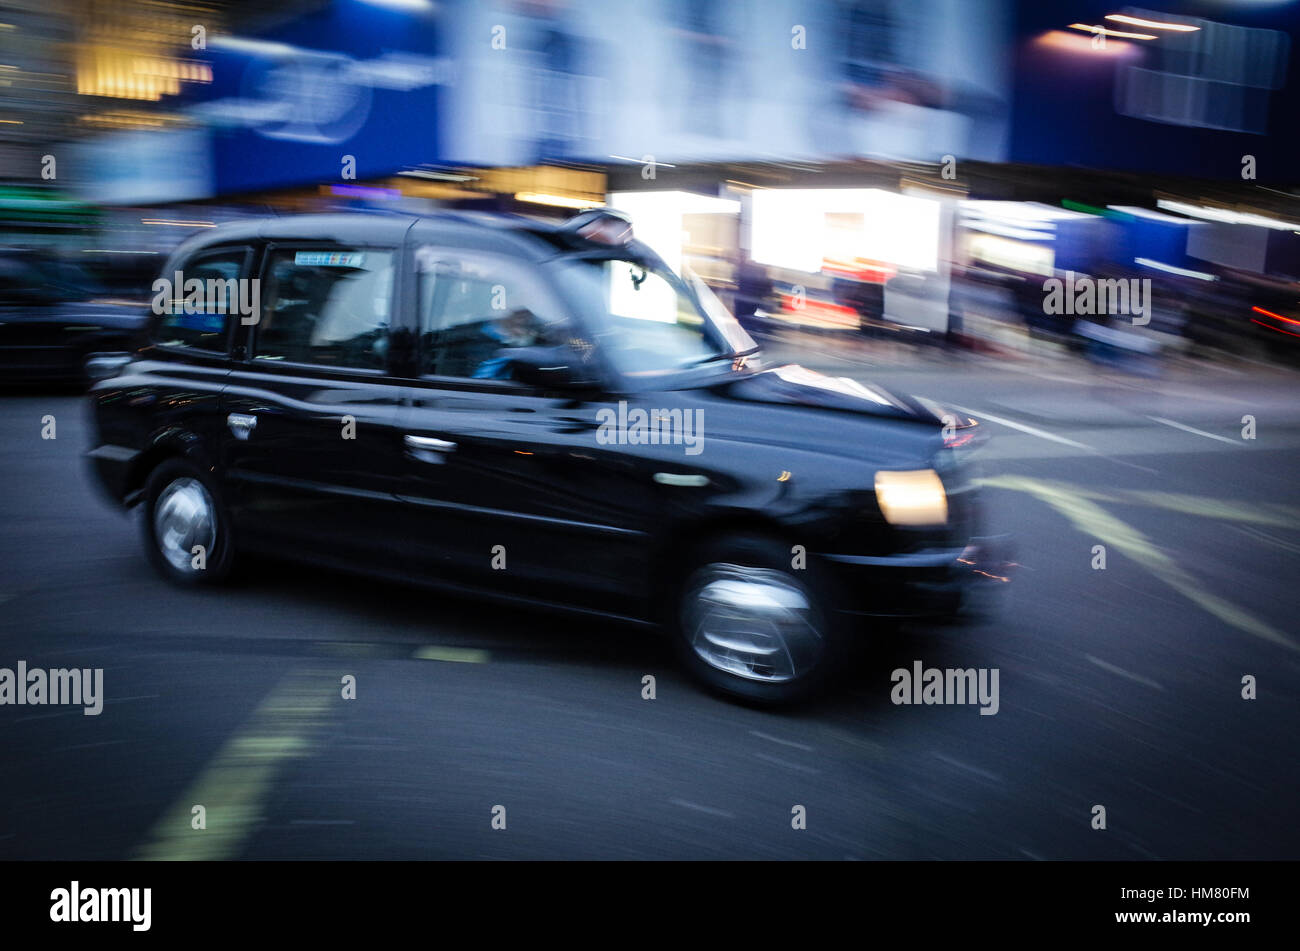 London Taxi Black Cab in Piccadilly Circus - Motion Blur - Stock Image